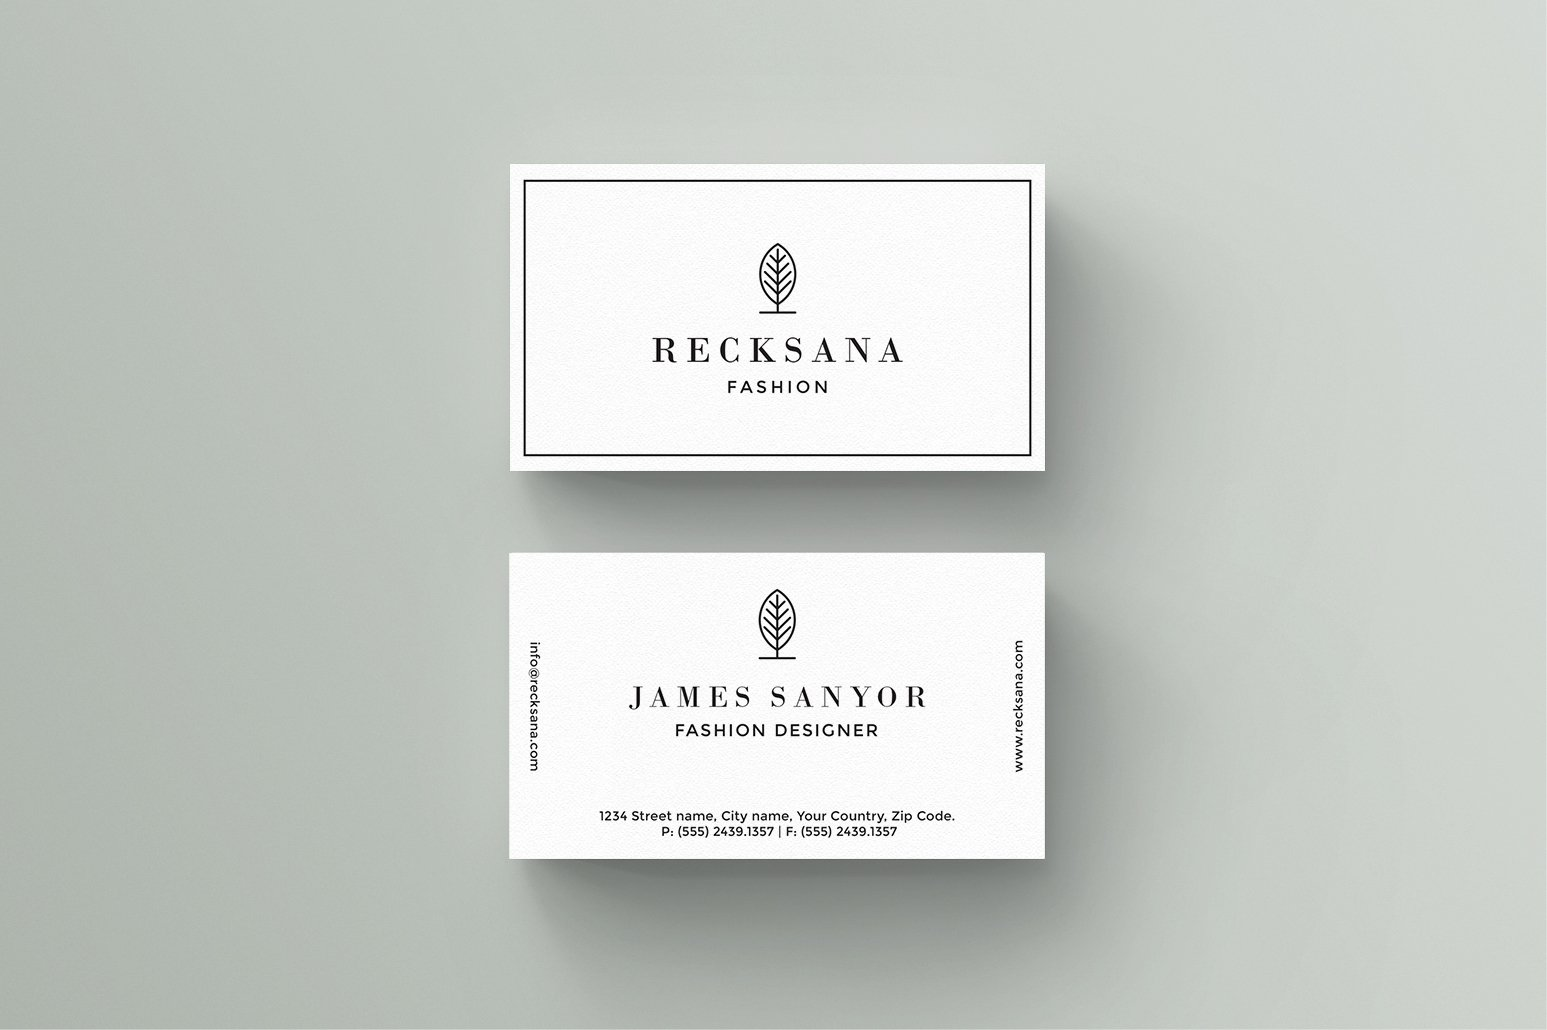 J U N I P E R Business Card Template Business Card Templates - Business card template with photo